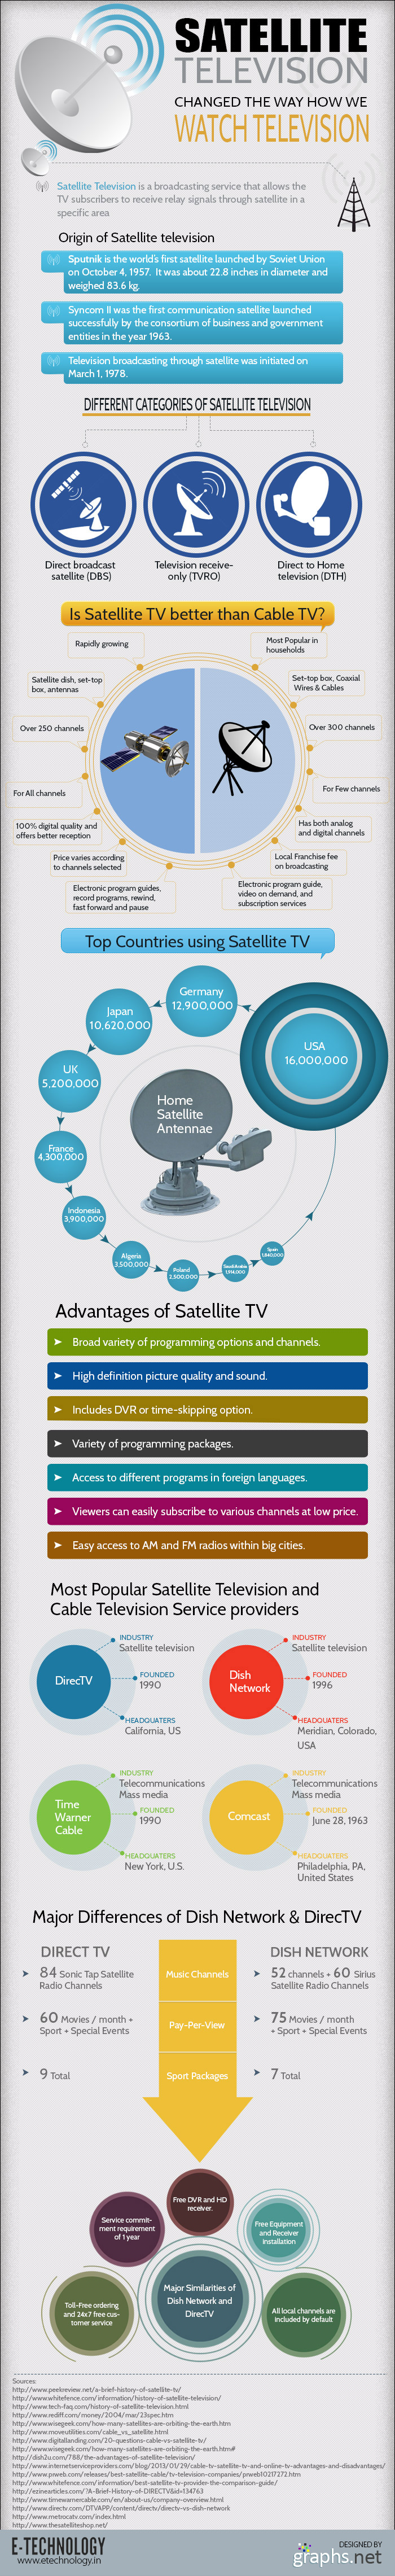 Satellite TV Vs Cable TV- which is better?